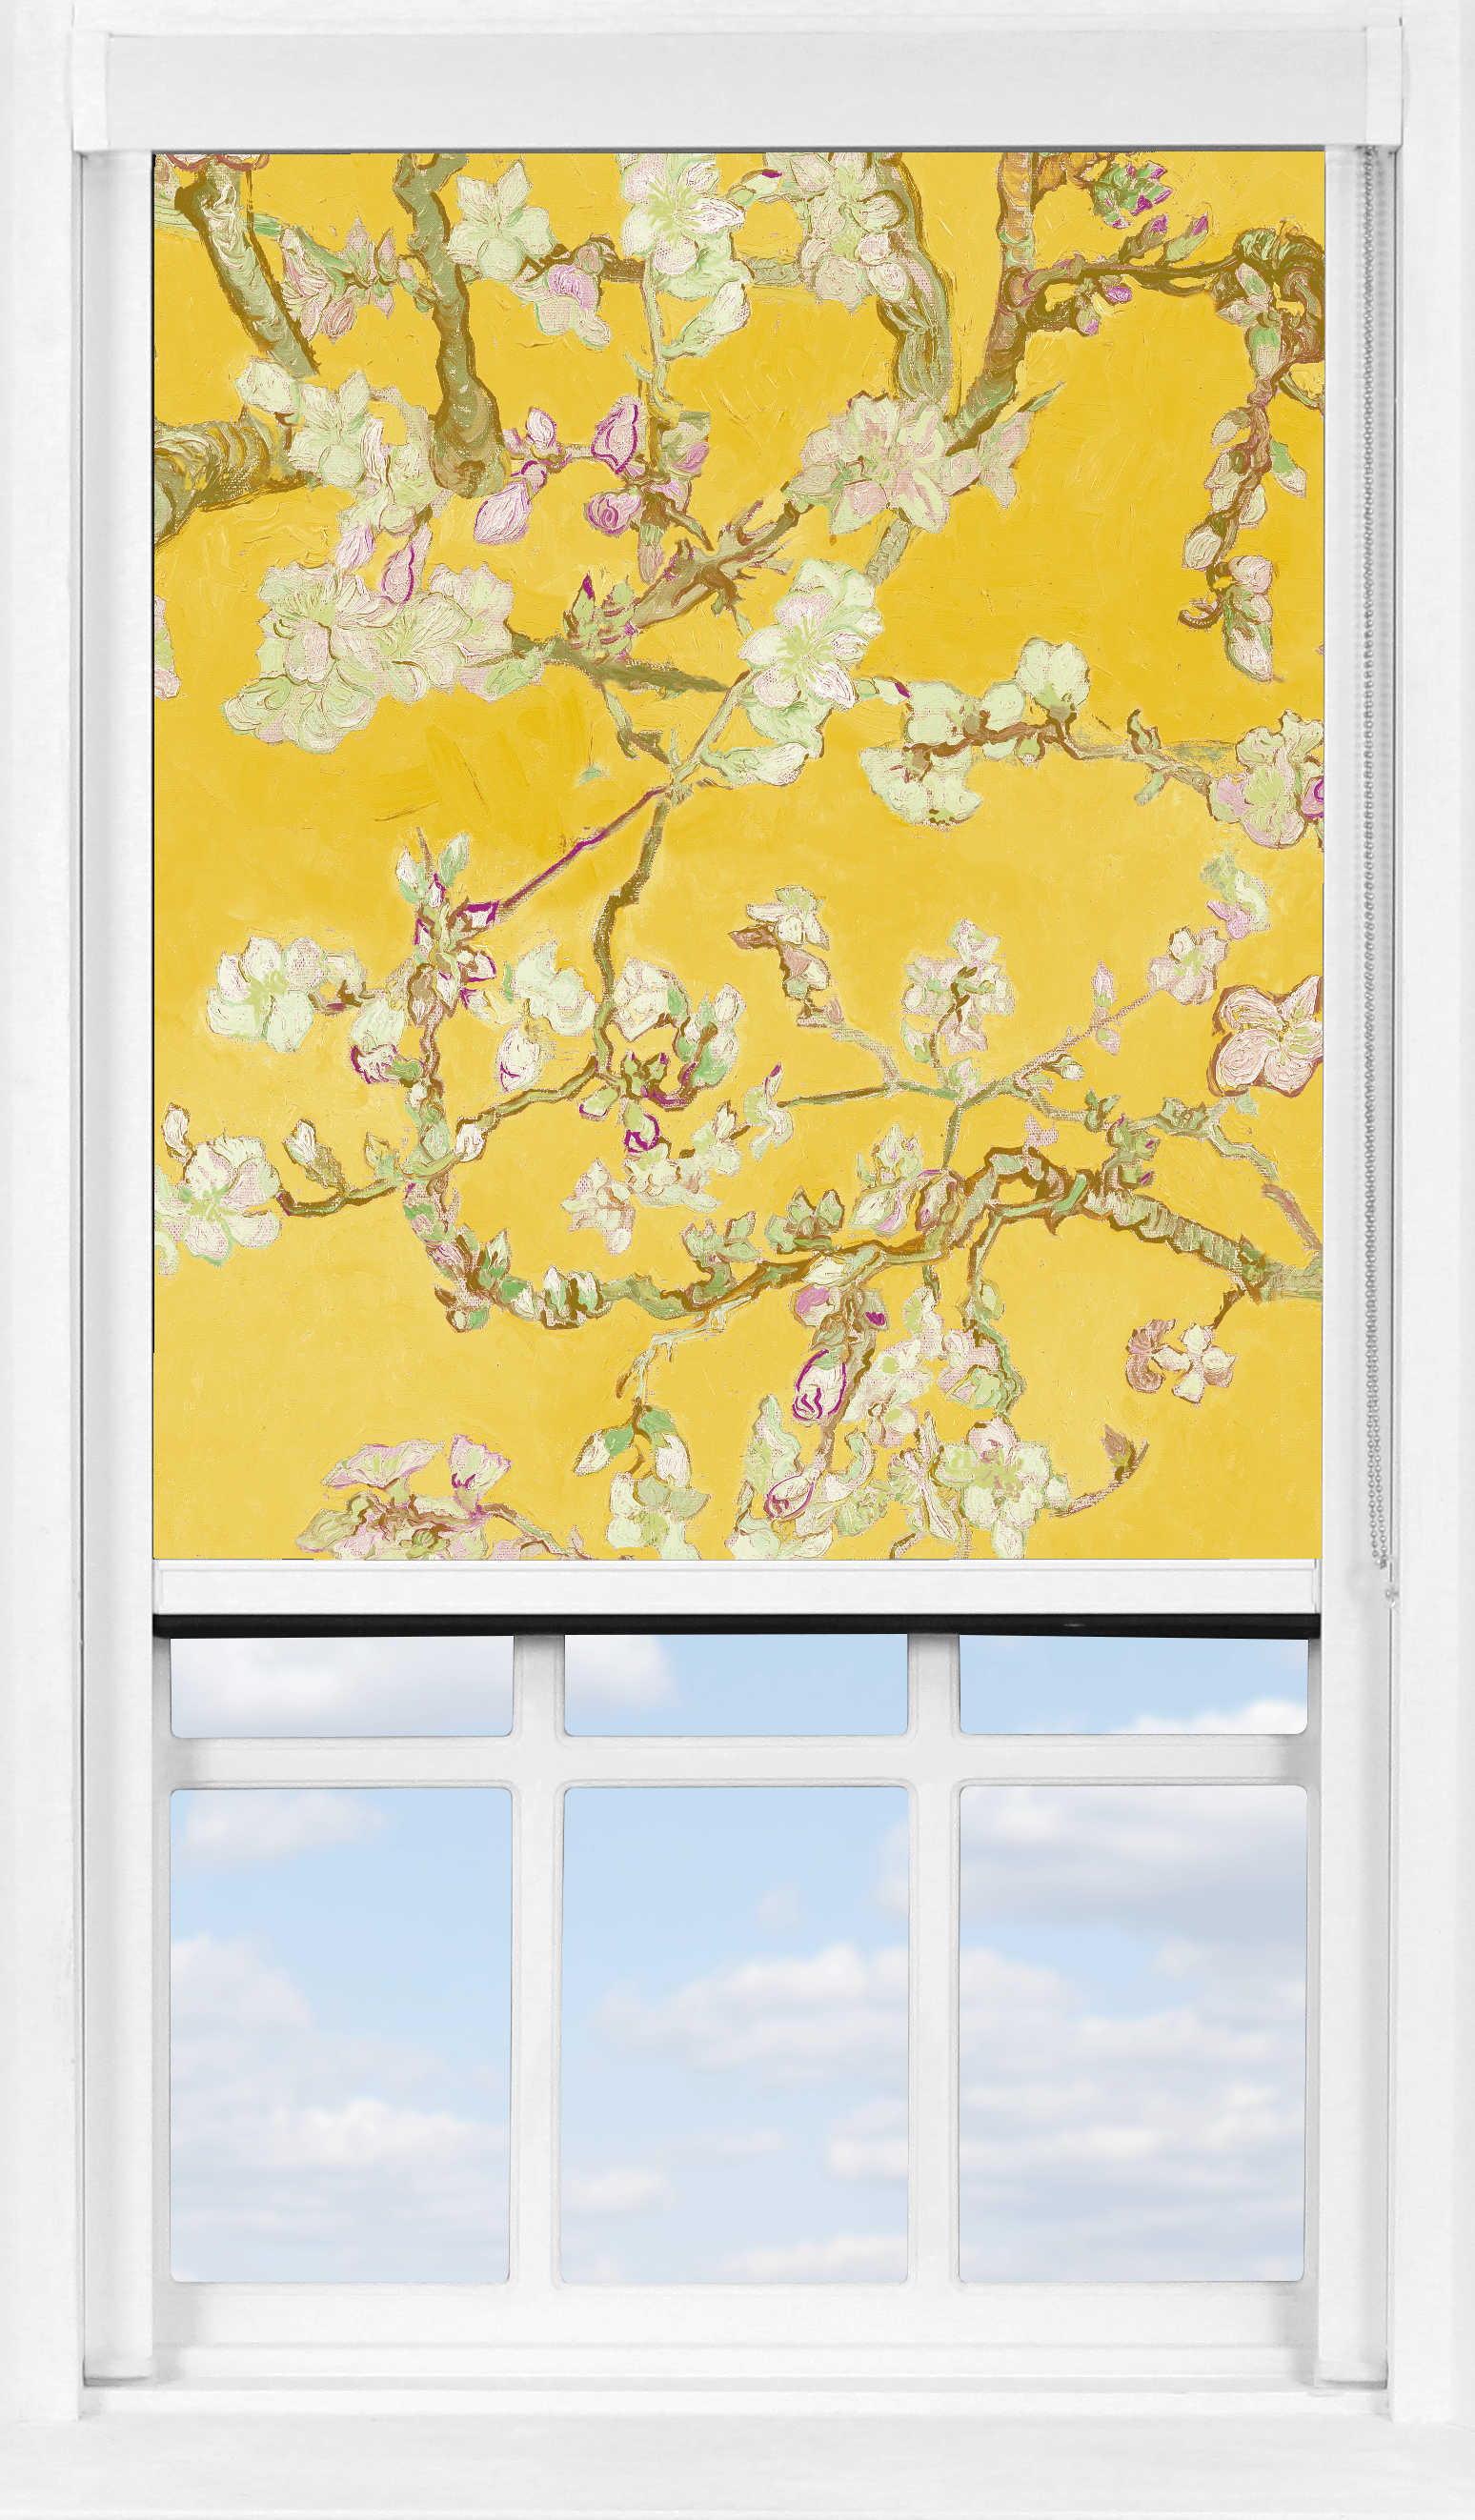 BlocOut™ XL in Van Gogh Almond Blossom Yellow Blackout